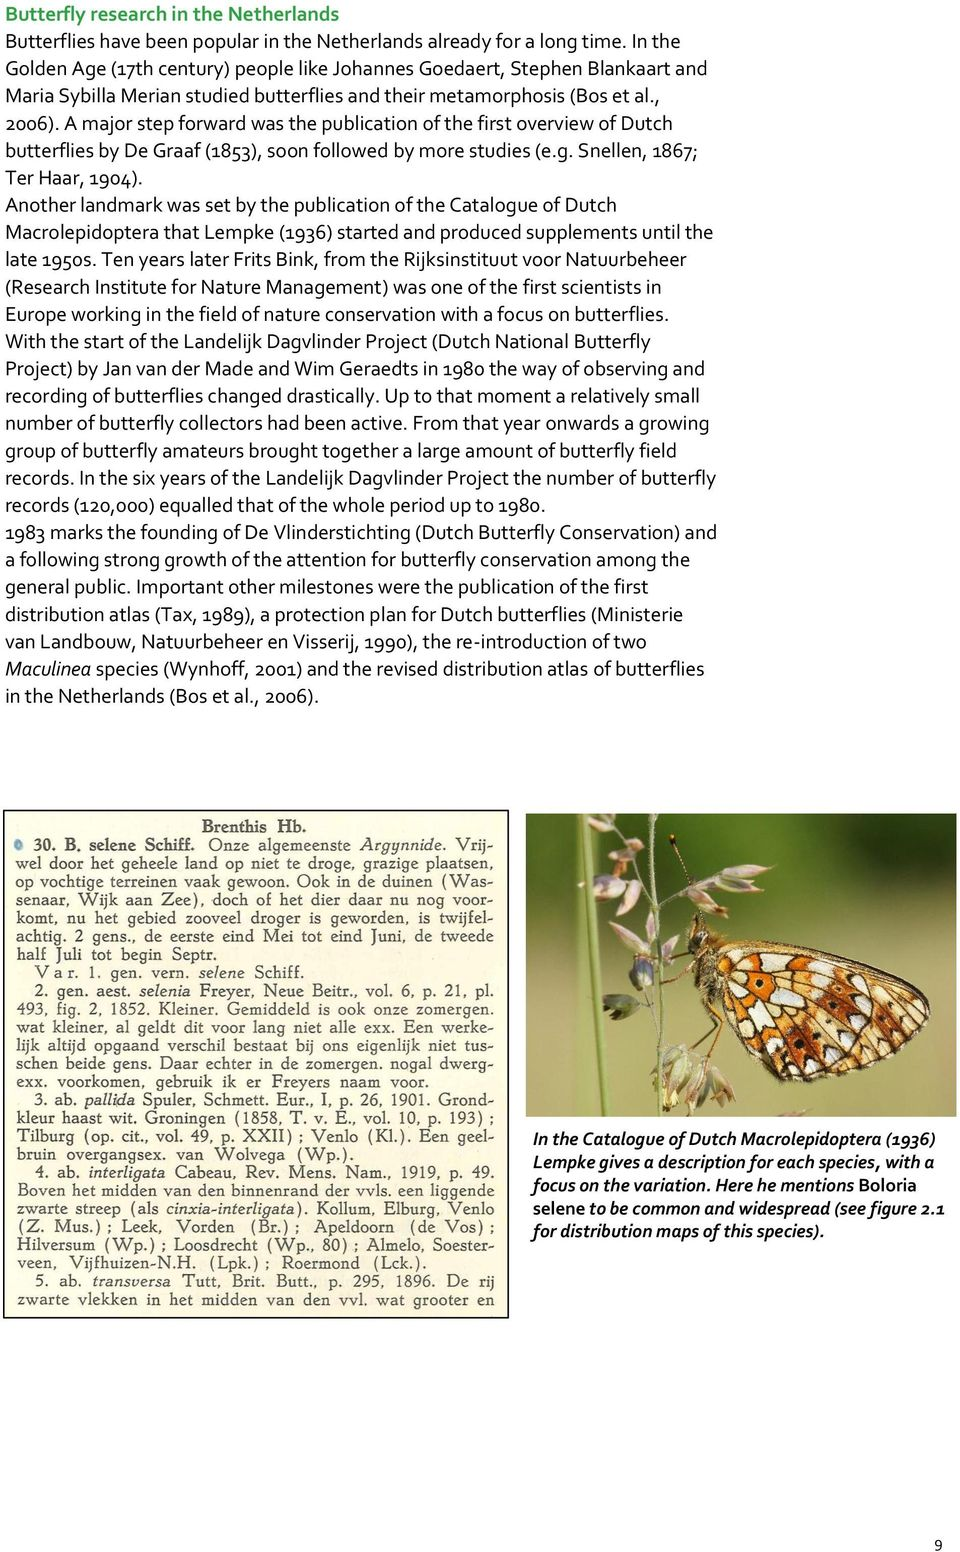 A major step forward was the publication of the first overview of Dutch butterflies by De Graaf (1853), soon followed by more studies (e.g. Snellen, 1867; Ter Haar, 1904).